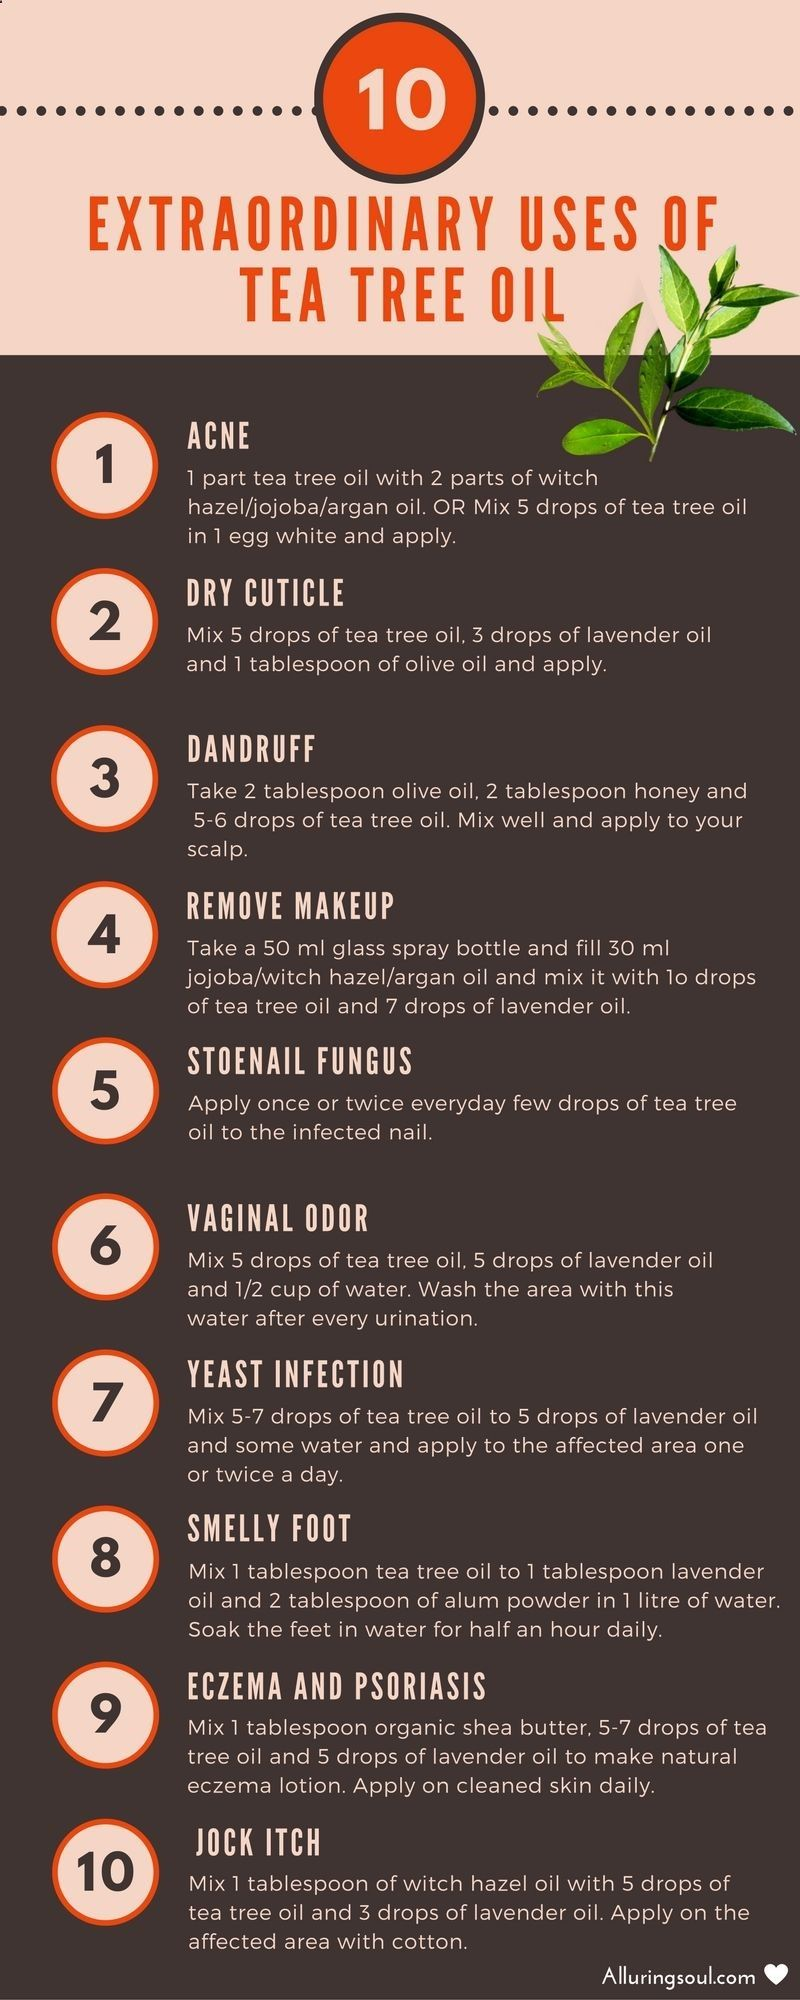 Use Coconut Oil Daily Coconutoil Tea Tree Oil Uses Amazing